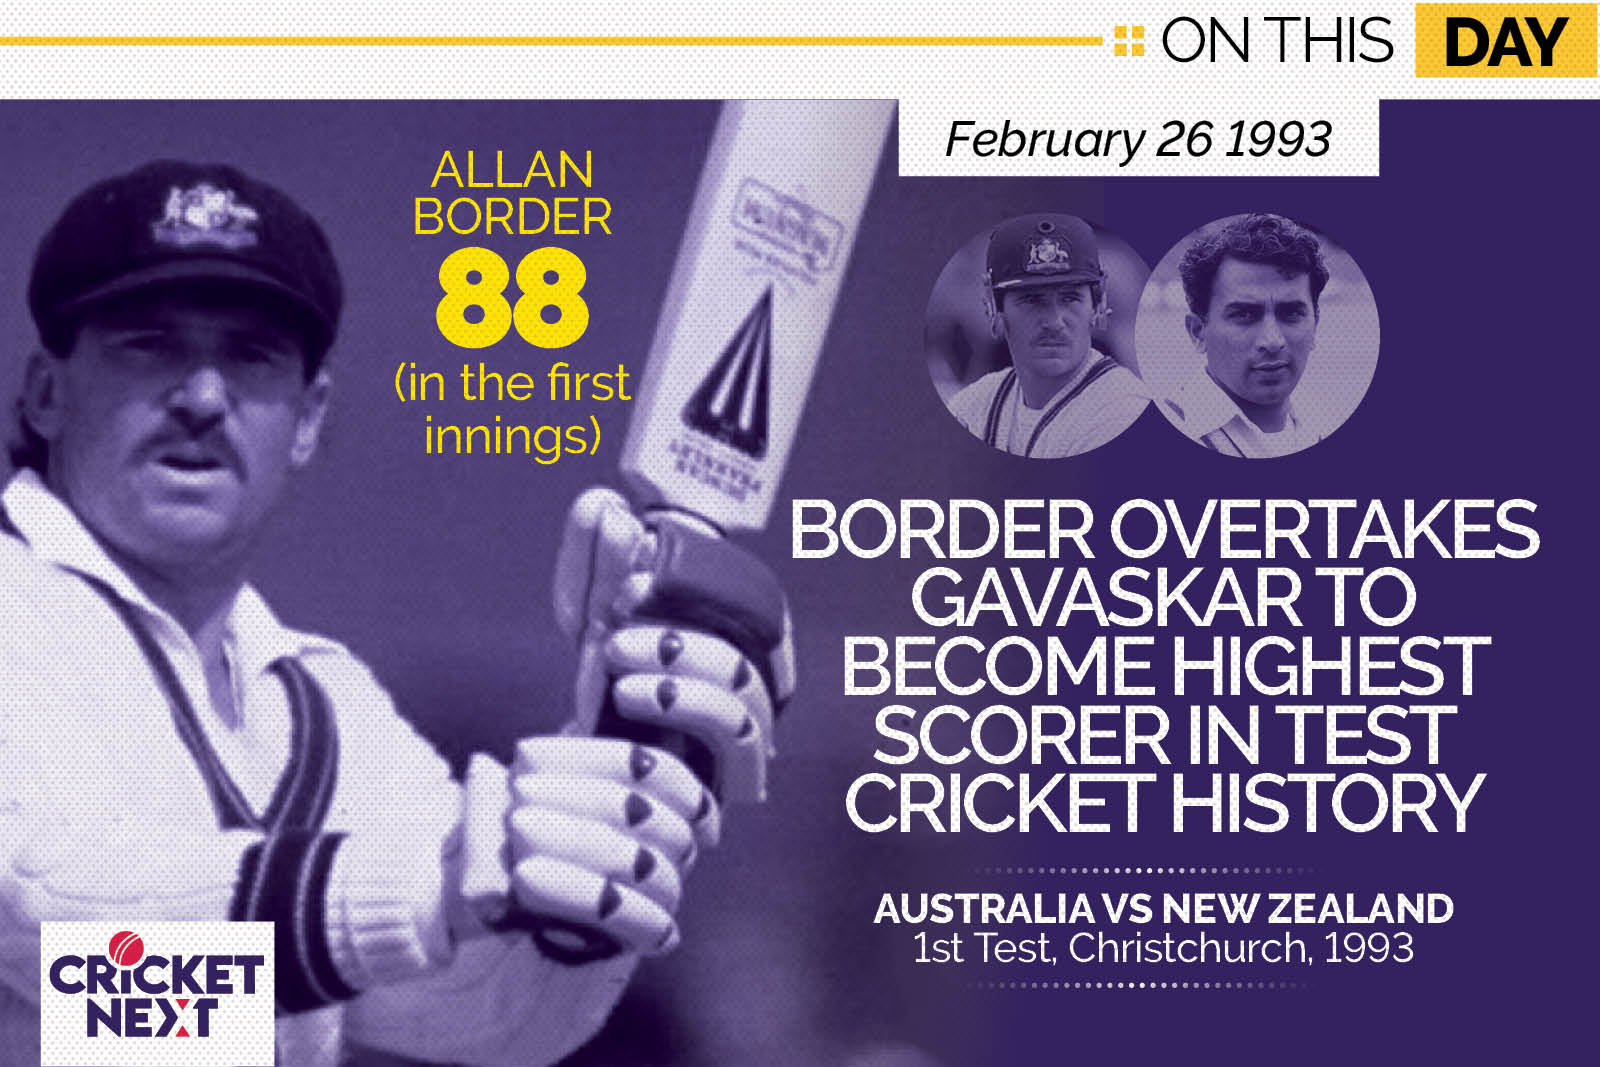 On This Day - February 26, 1993: Border Overhauls Gavaskar To Become Highest Scorer in Test History